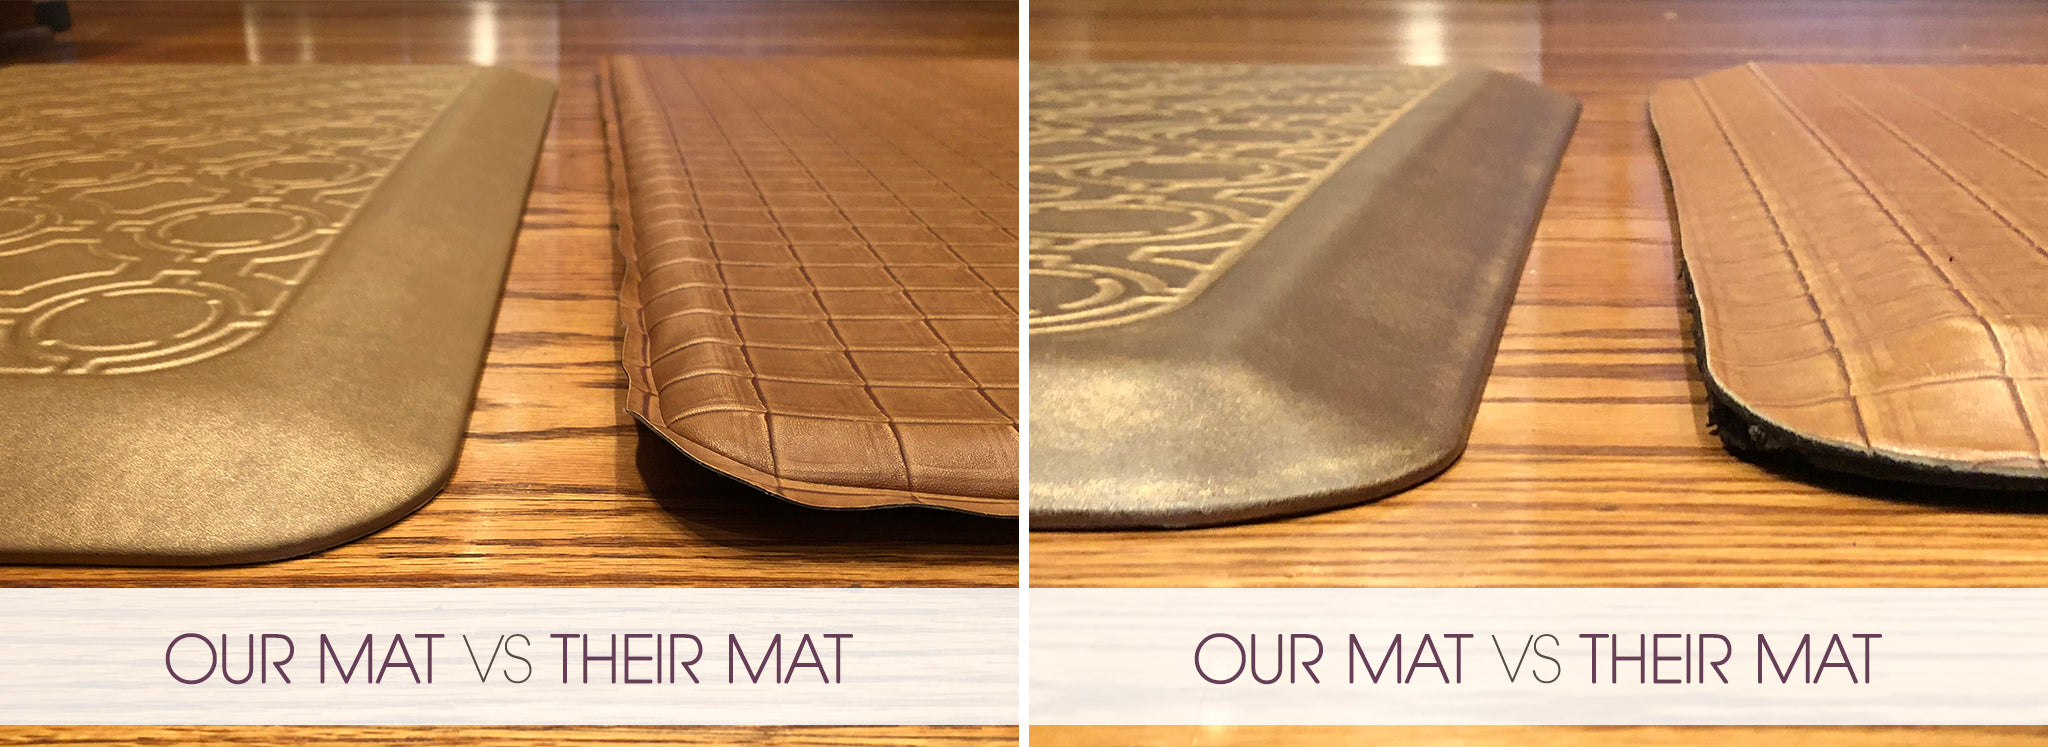 Our Mat vs Their Mat